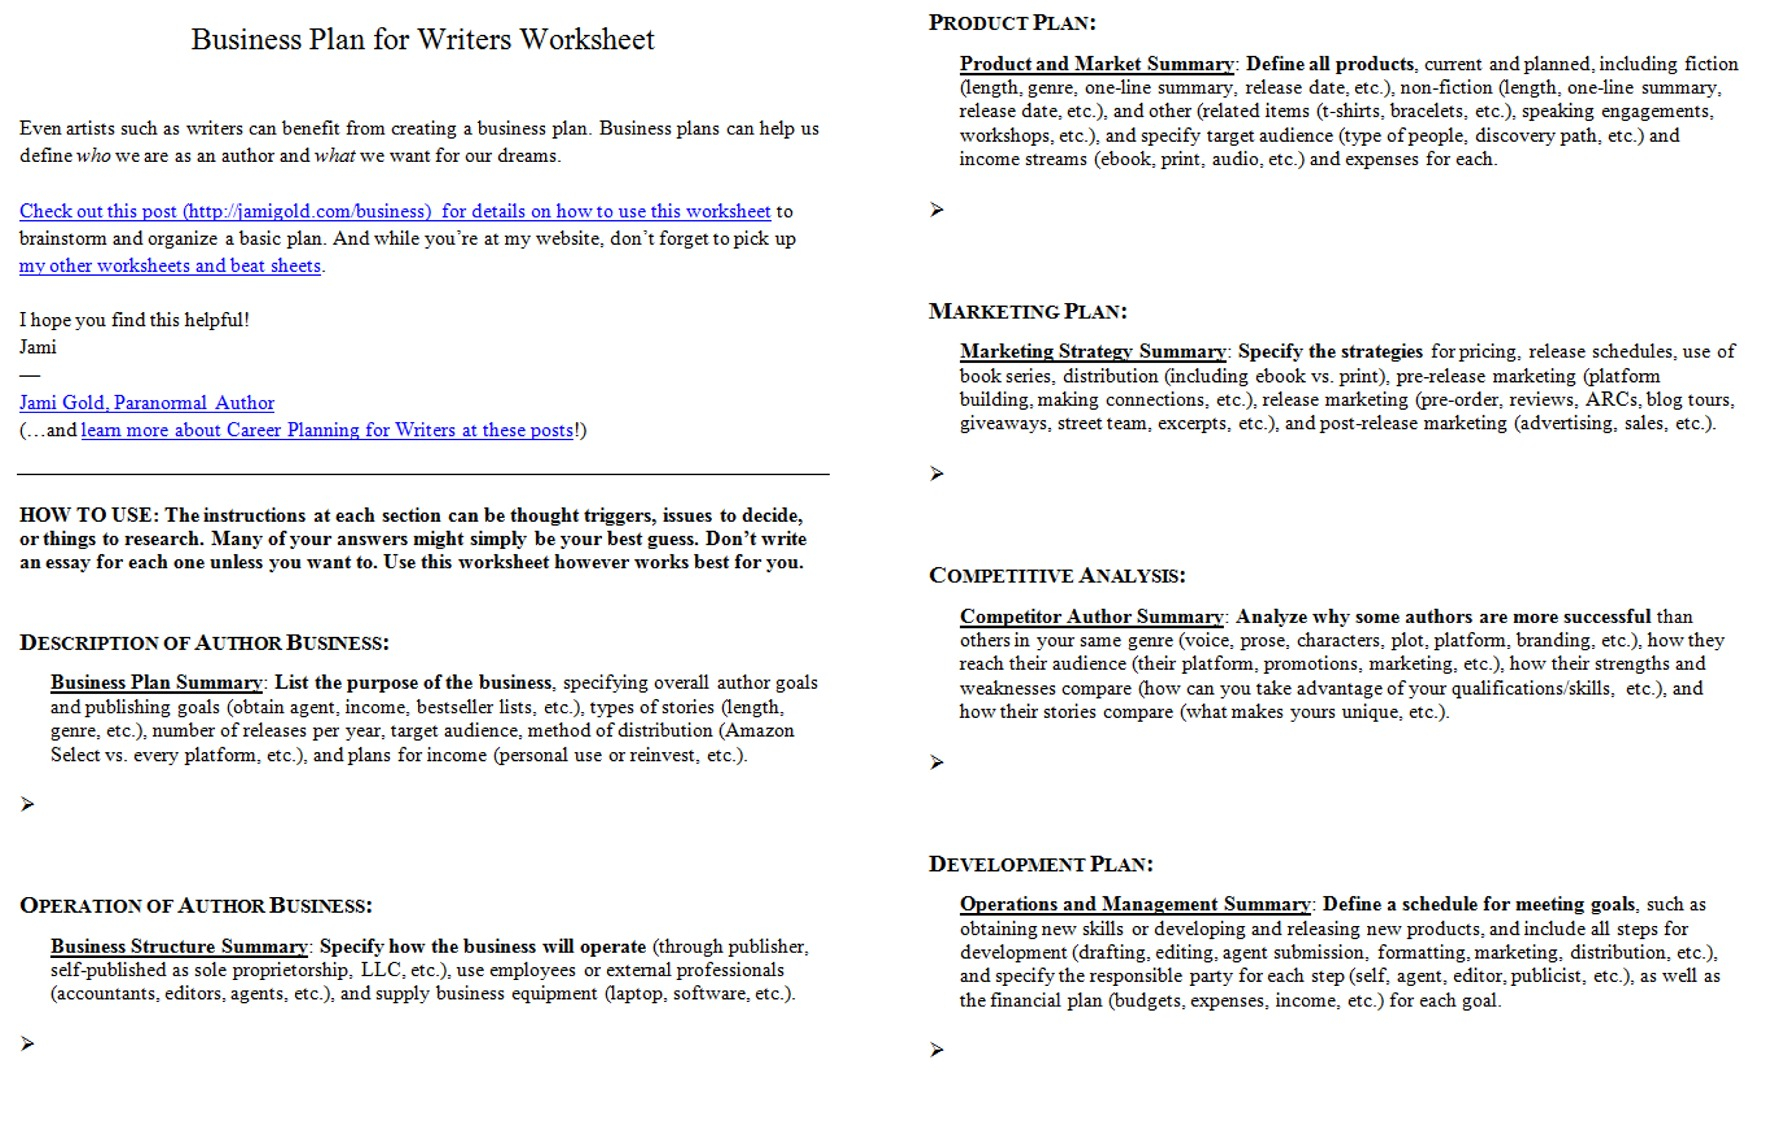 Proatmealus  Winsome Worksheets For Writers  Jami Gold Paranormal Author With Heavenly Screen Shot Of Both Pages Of The Business Plan For Writers Worksheet With Beauteous Modifiers Worksheet Also Past Perfect Worksheet In Addition Scientific Method Worksheets Middle School And Dynamic Math Worksheets As Well As Ruler Measurements Worksheets Additionally Simplest Form Fractions Worksheet From Jamigoldcom With Proatmealus  Heavenly Worksheets For Writers  Jami Gold Paranormal Author With Beauteous Screen Shot Of Both Pages Of The Business Plan For Writers Worksheet And Winsome Modifiers Worksheet Also Past Perfect Worksheet In Addition Scientific Method Worksheets Middle School From Jamigoldcom